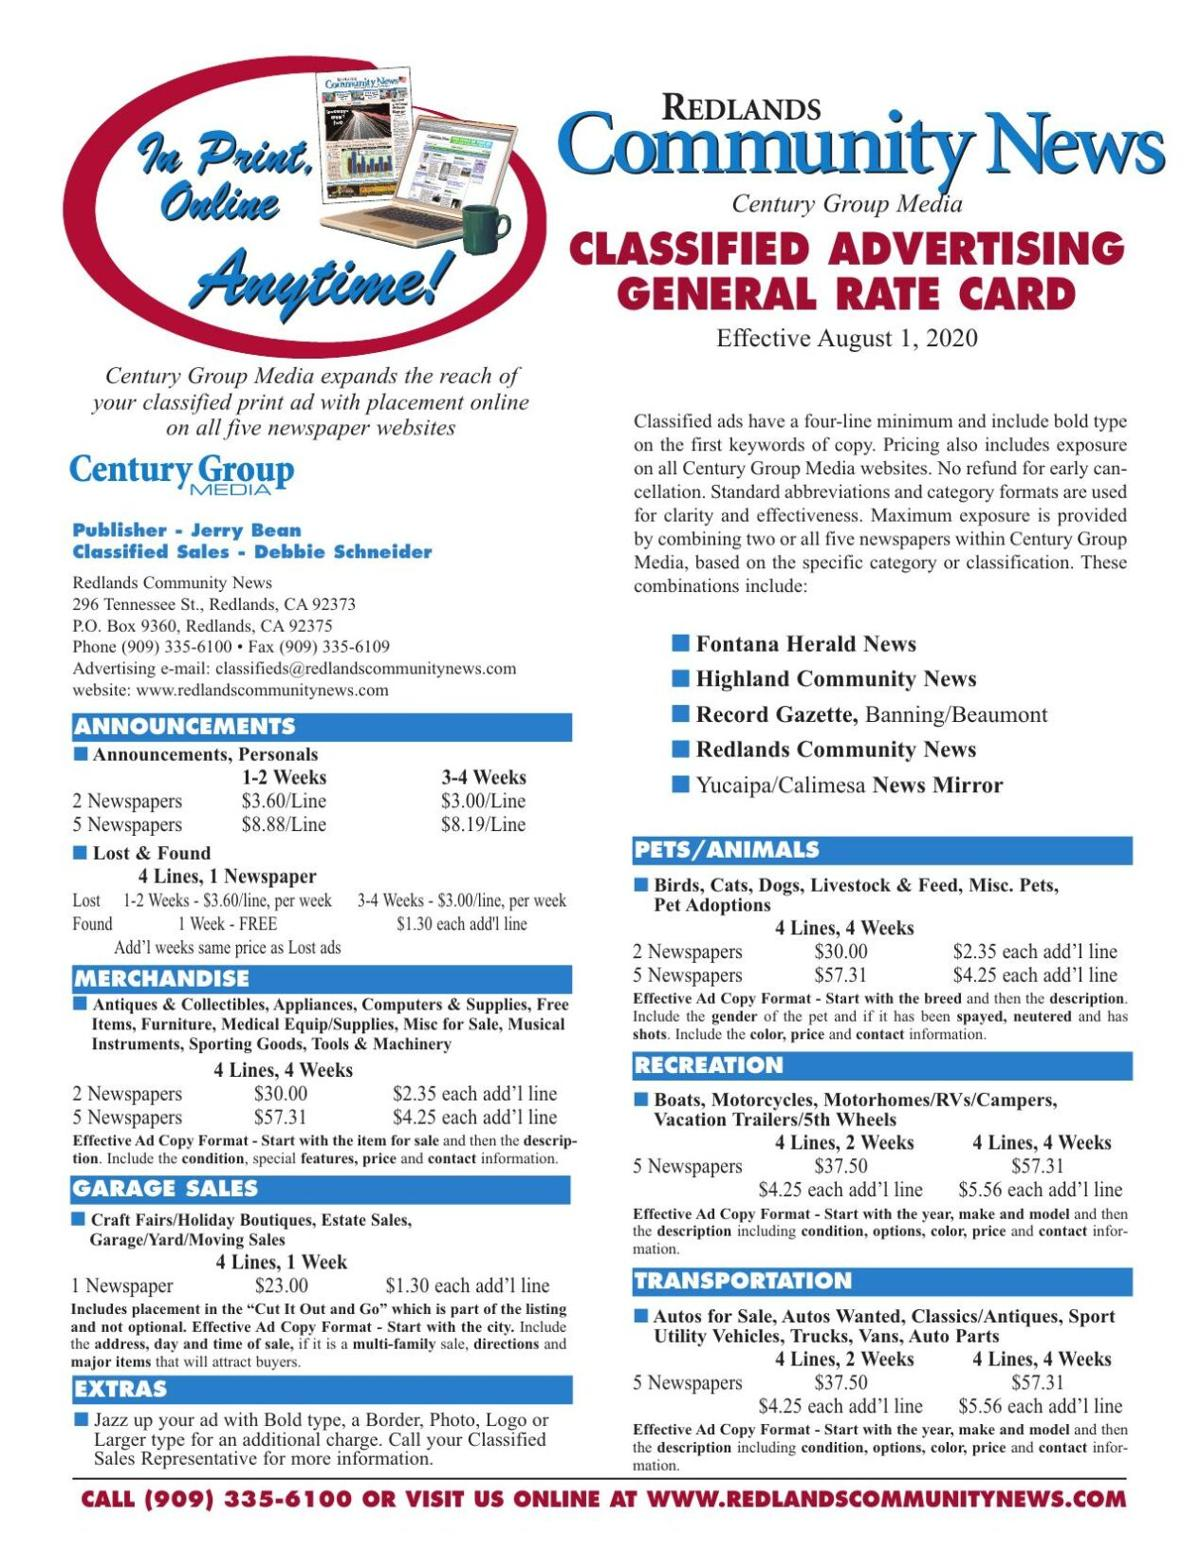 Redlands Community News - Classified General Rates